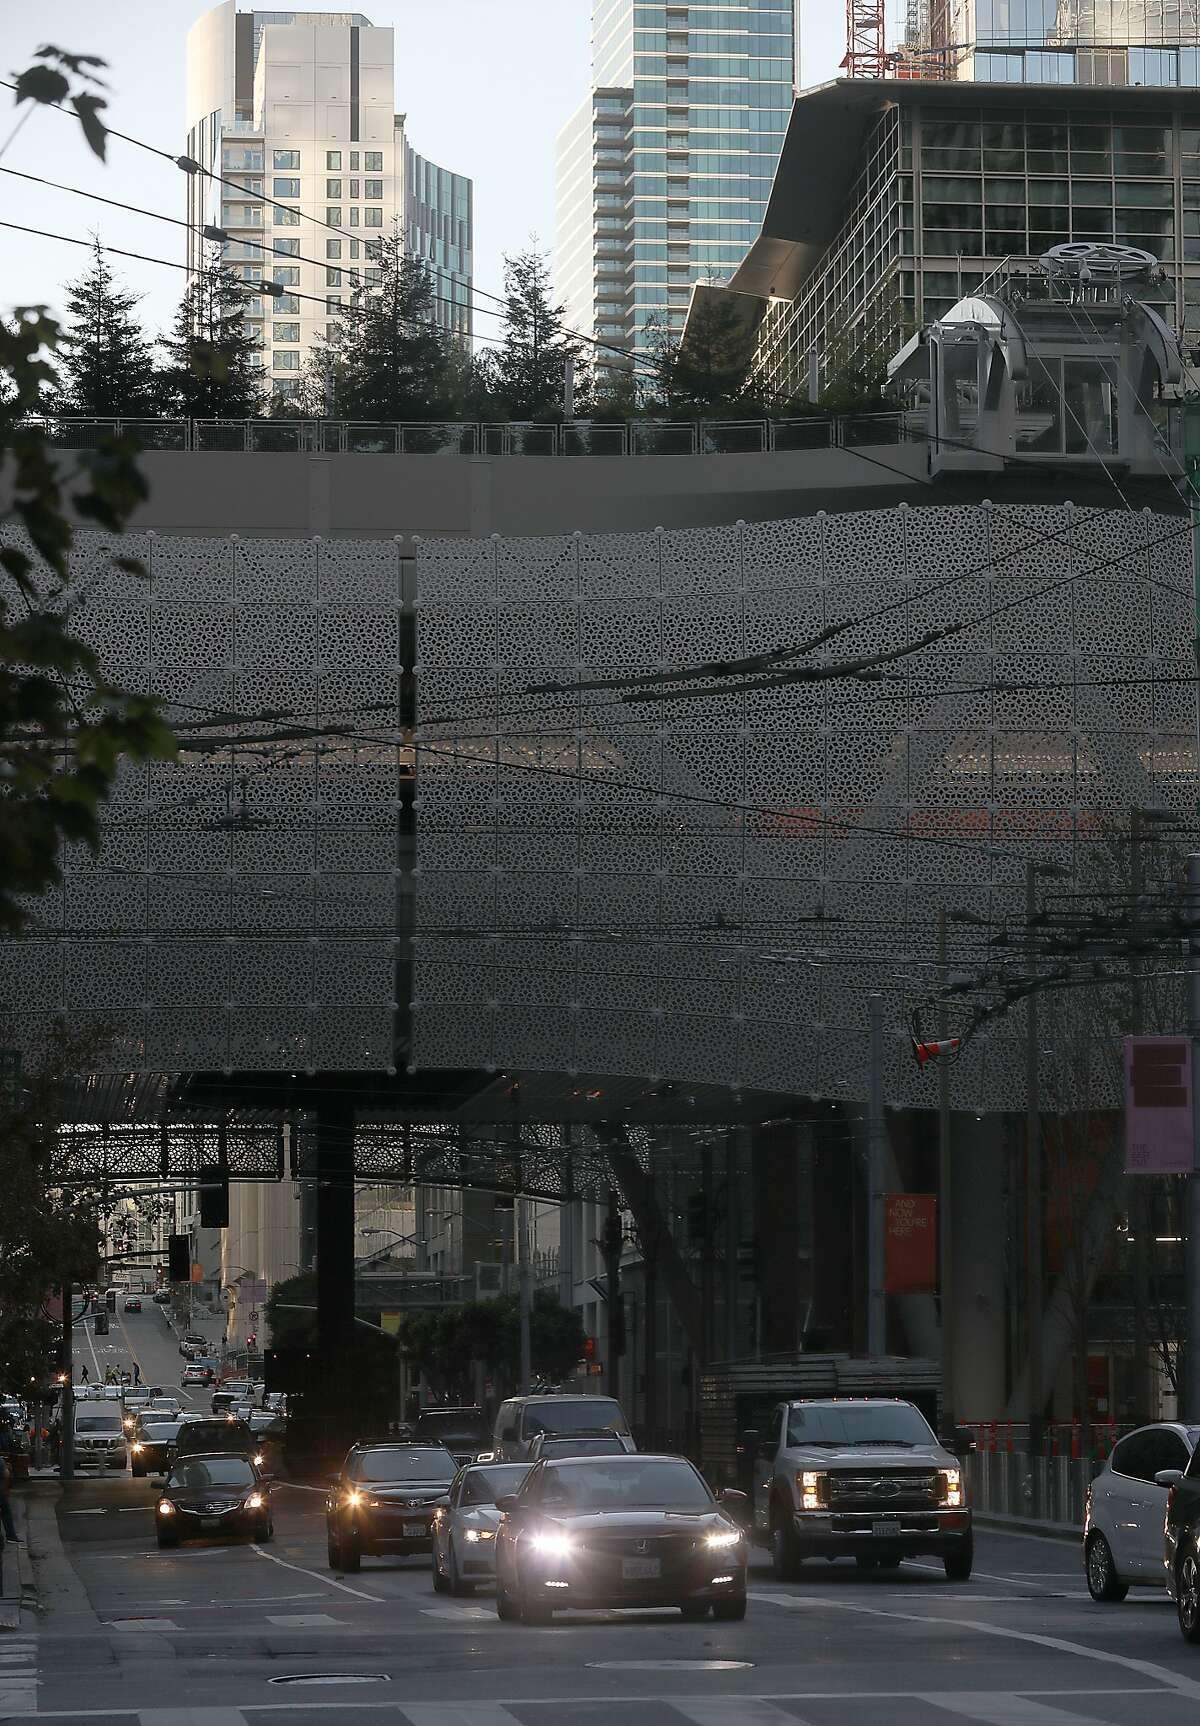 The damaged beams have recently been fixed at Transbay Transit Center and opens to traffic on Monday, Oct. 15, 2018 in San Francisco, Calif. The opening of Fremont, between Howard and Mission streets, comes nearly three weeks after cracks were found in steel beams above the motorway.